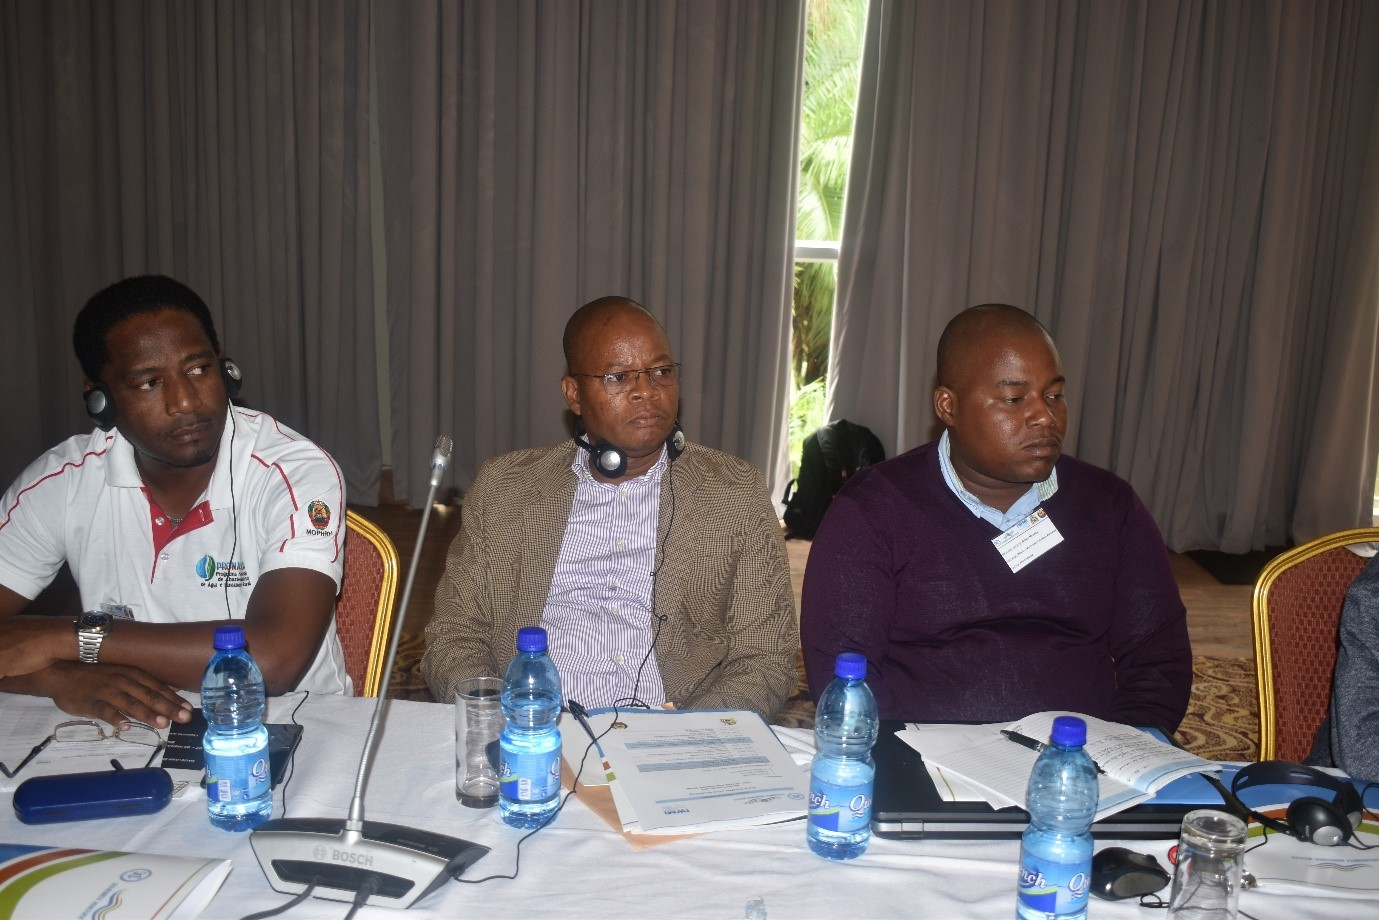 SADC-GMI hosts the Transboundary Water Resources Management in the Shire Basin Project Validation Workshop 2